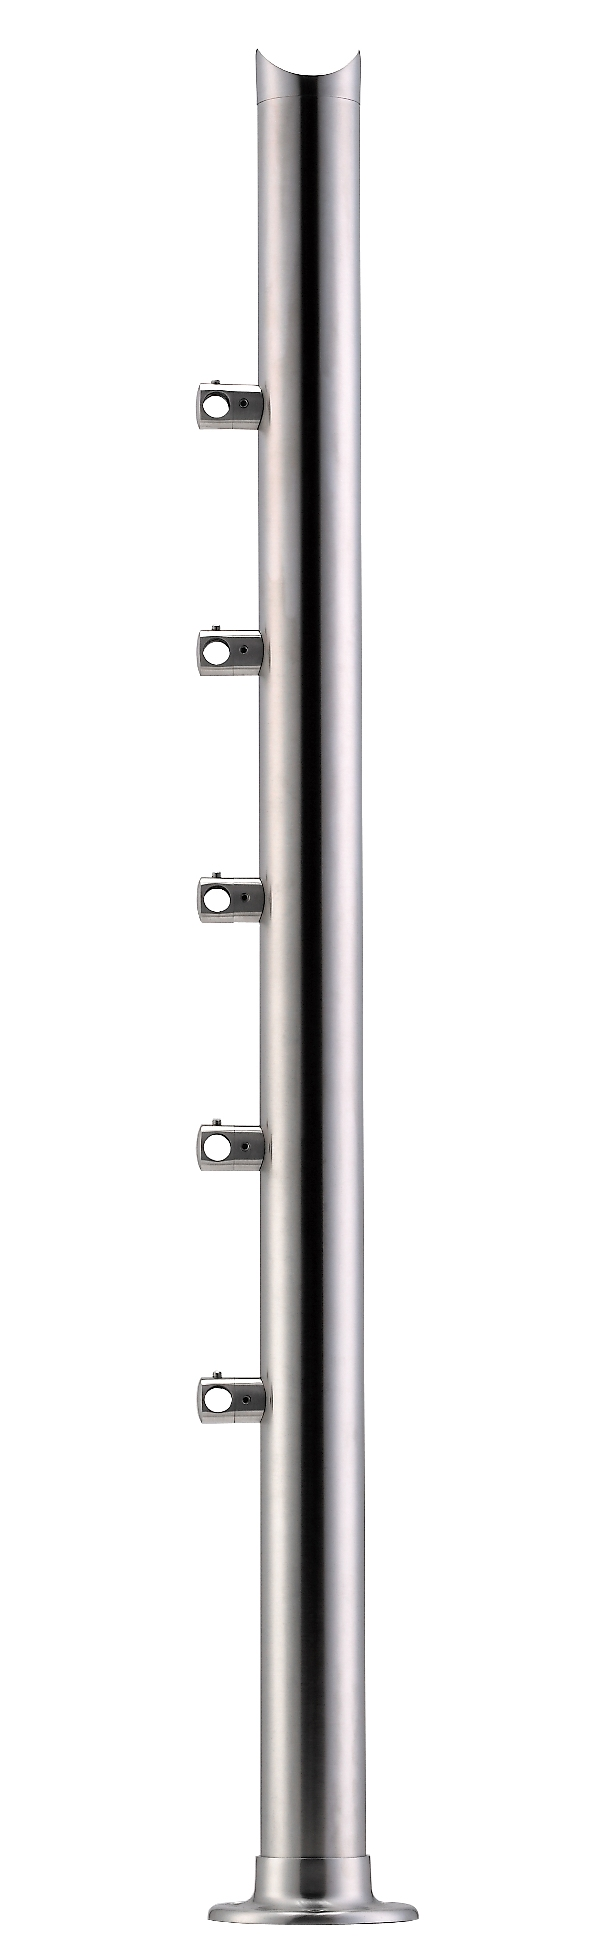 Stainless Steel Balustrade Posts - Tubular - SS:2020579A